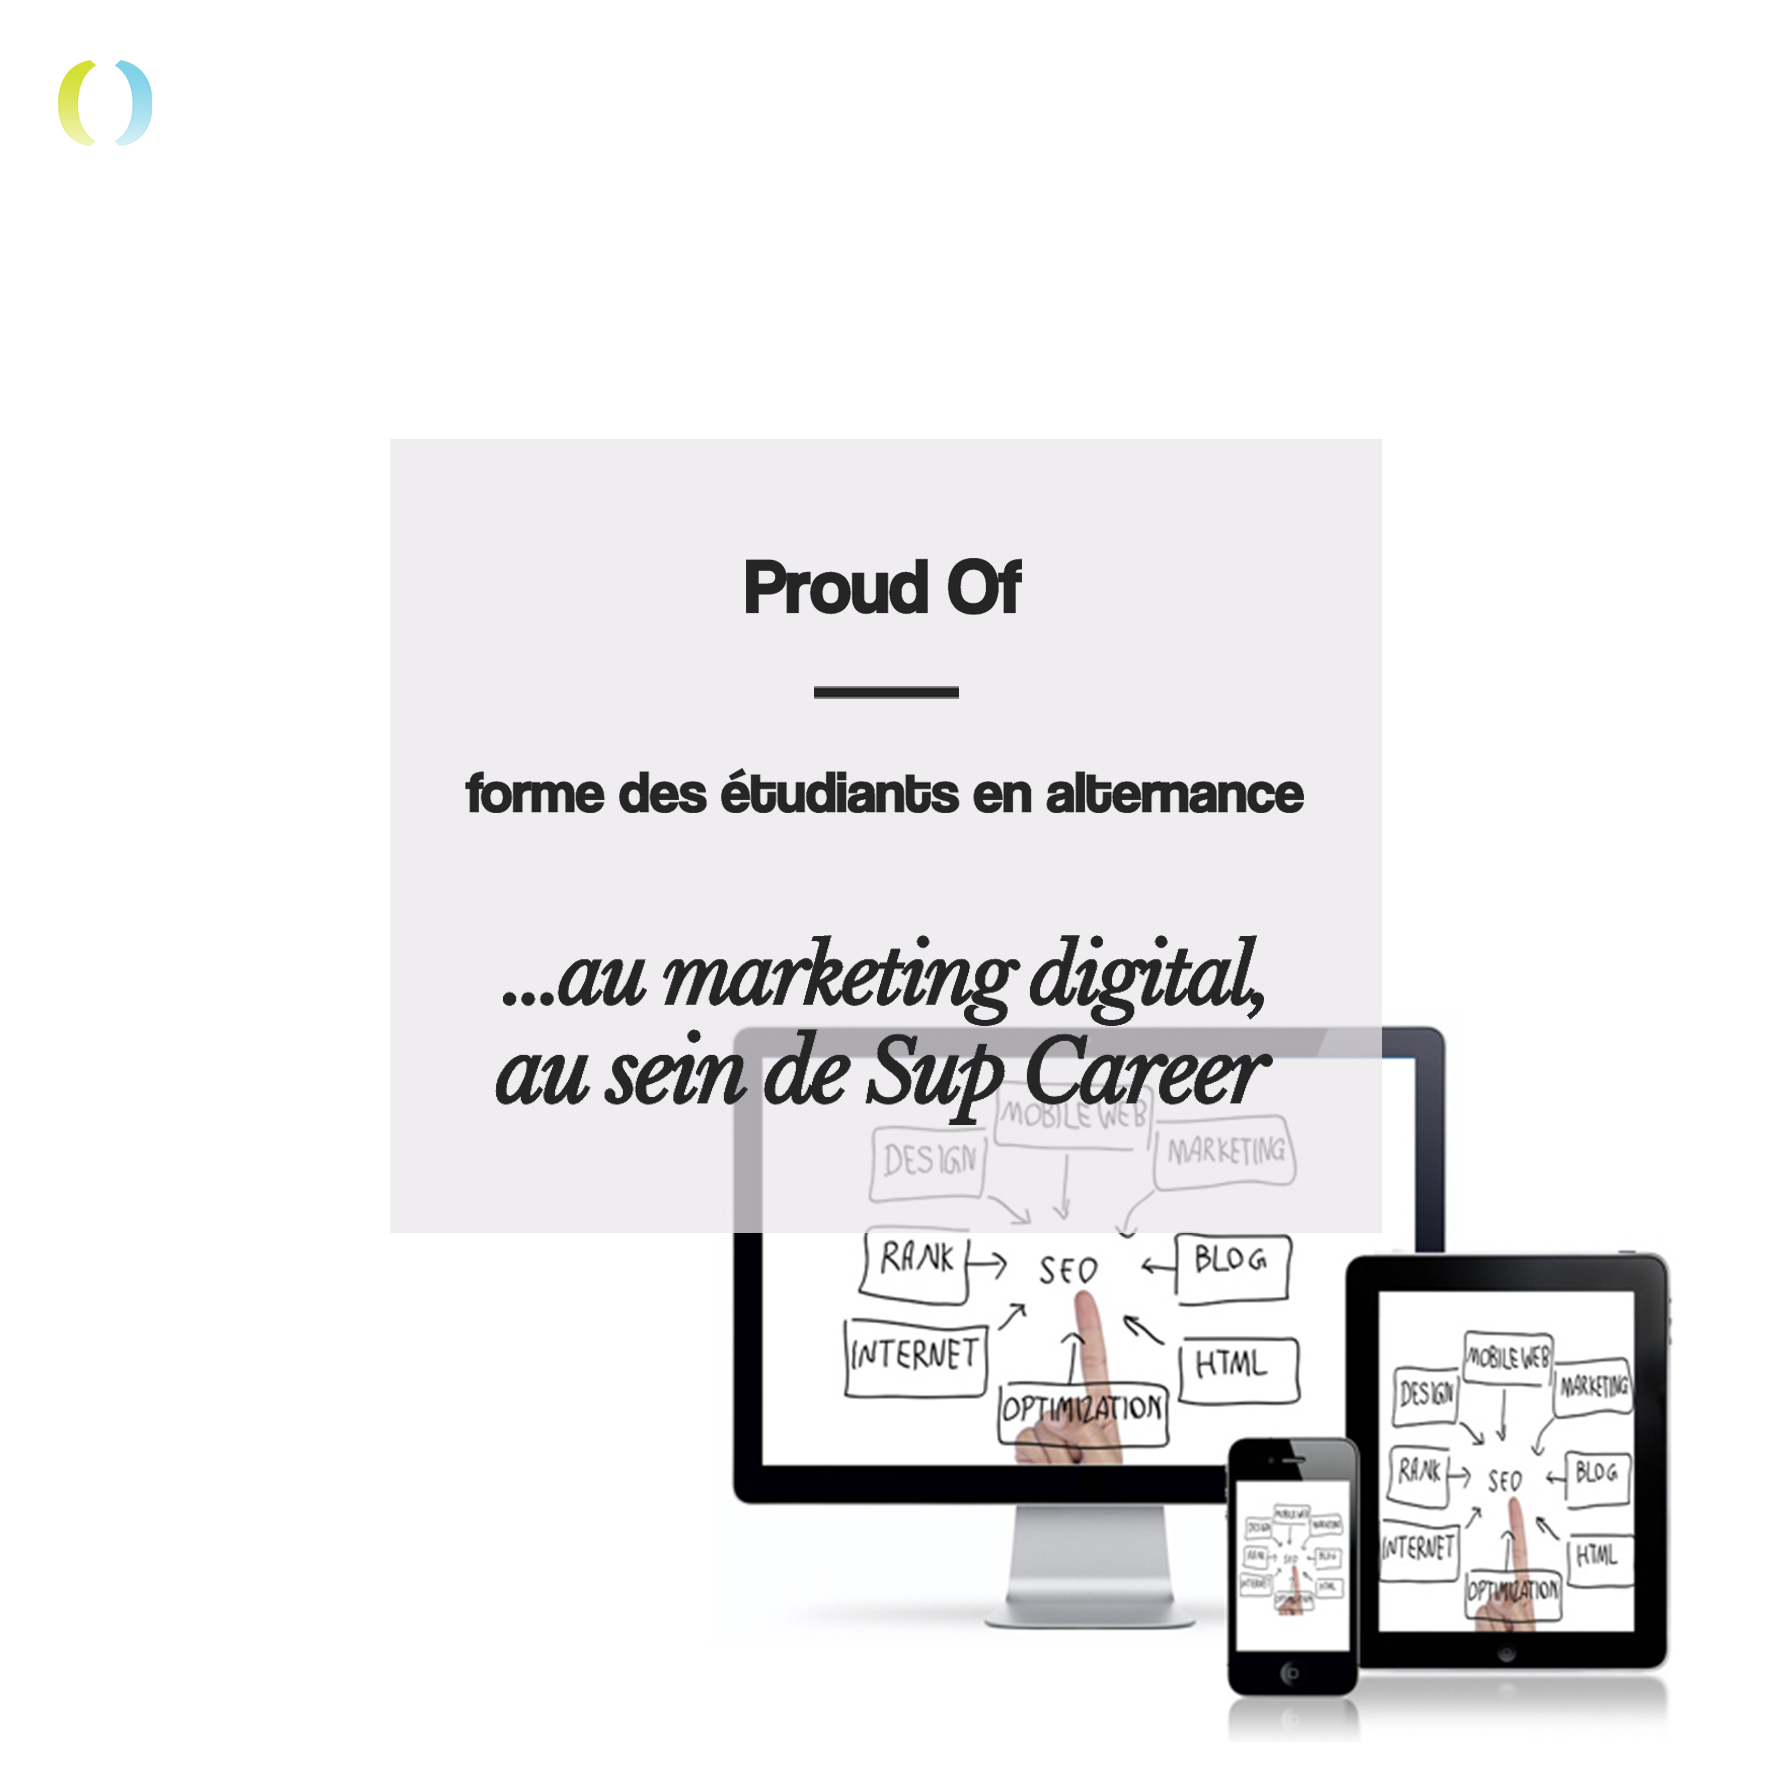 Proud Of - Catherine Galice - Home - Proud Of forme des étudiants en alternance au marketing digital au sein de Sup Career